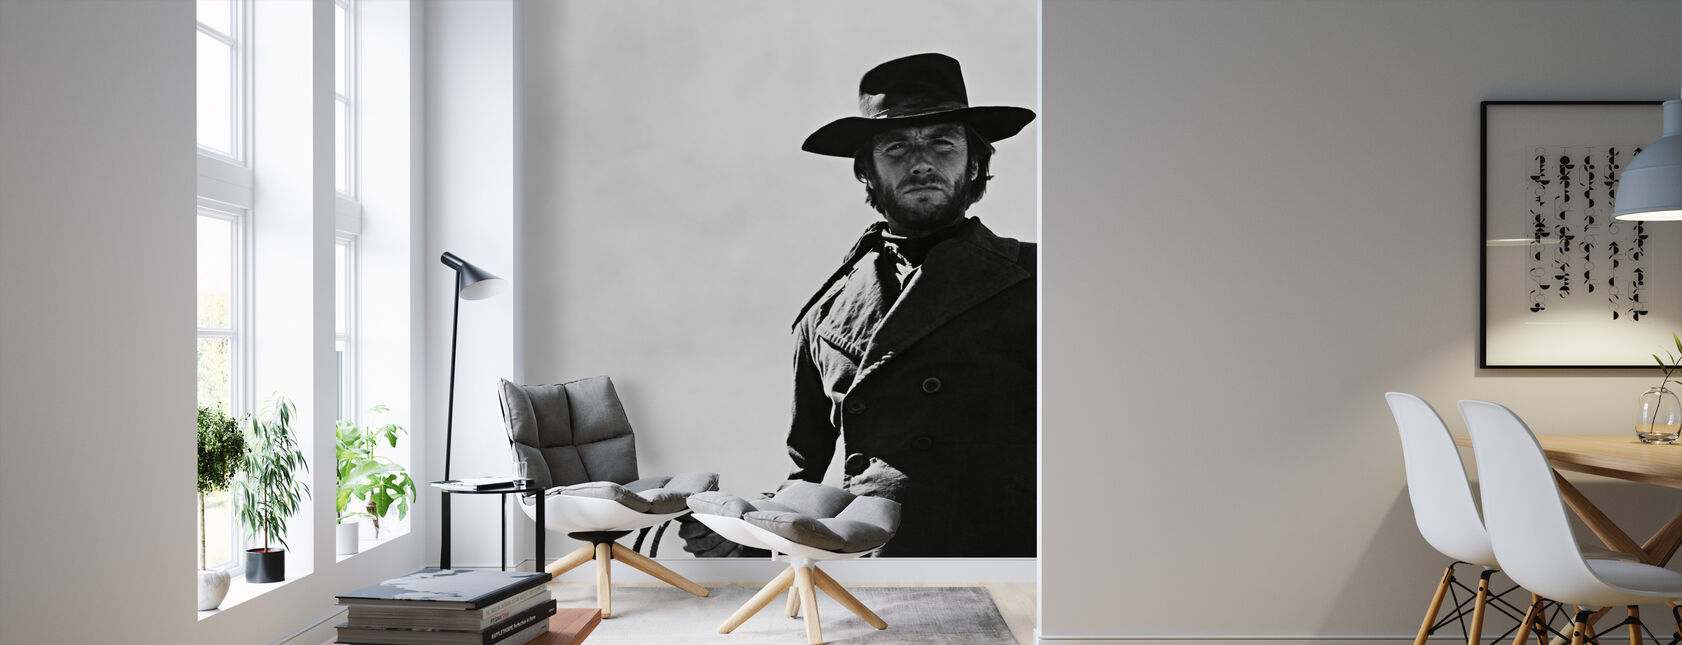 High Plains Drifter - Clint Eastwood - Wallpaper - Living Room